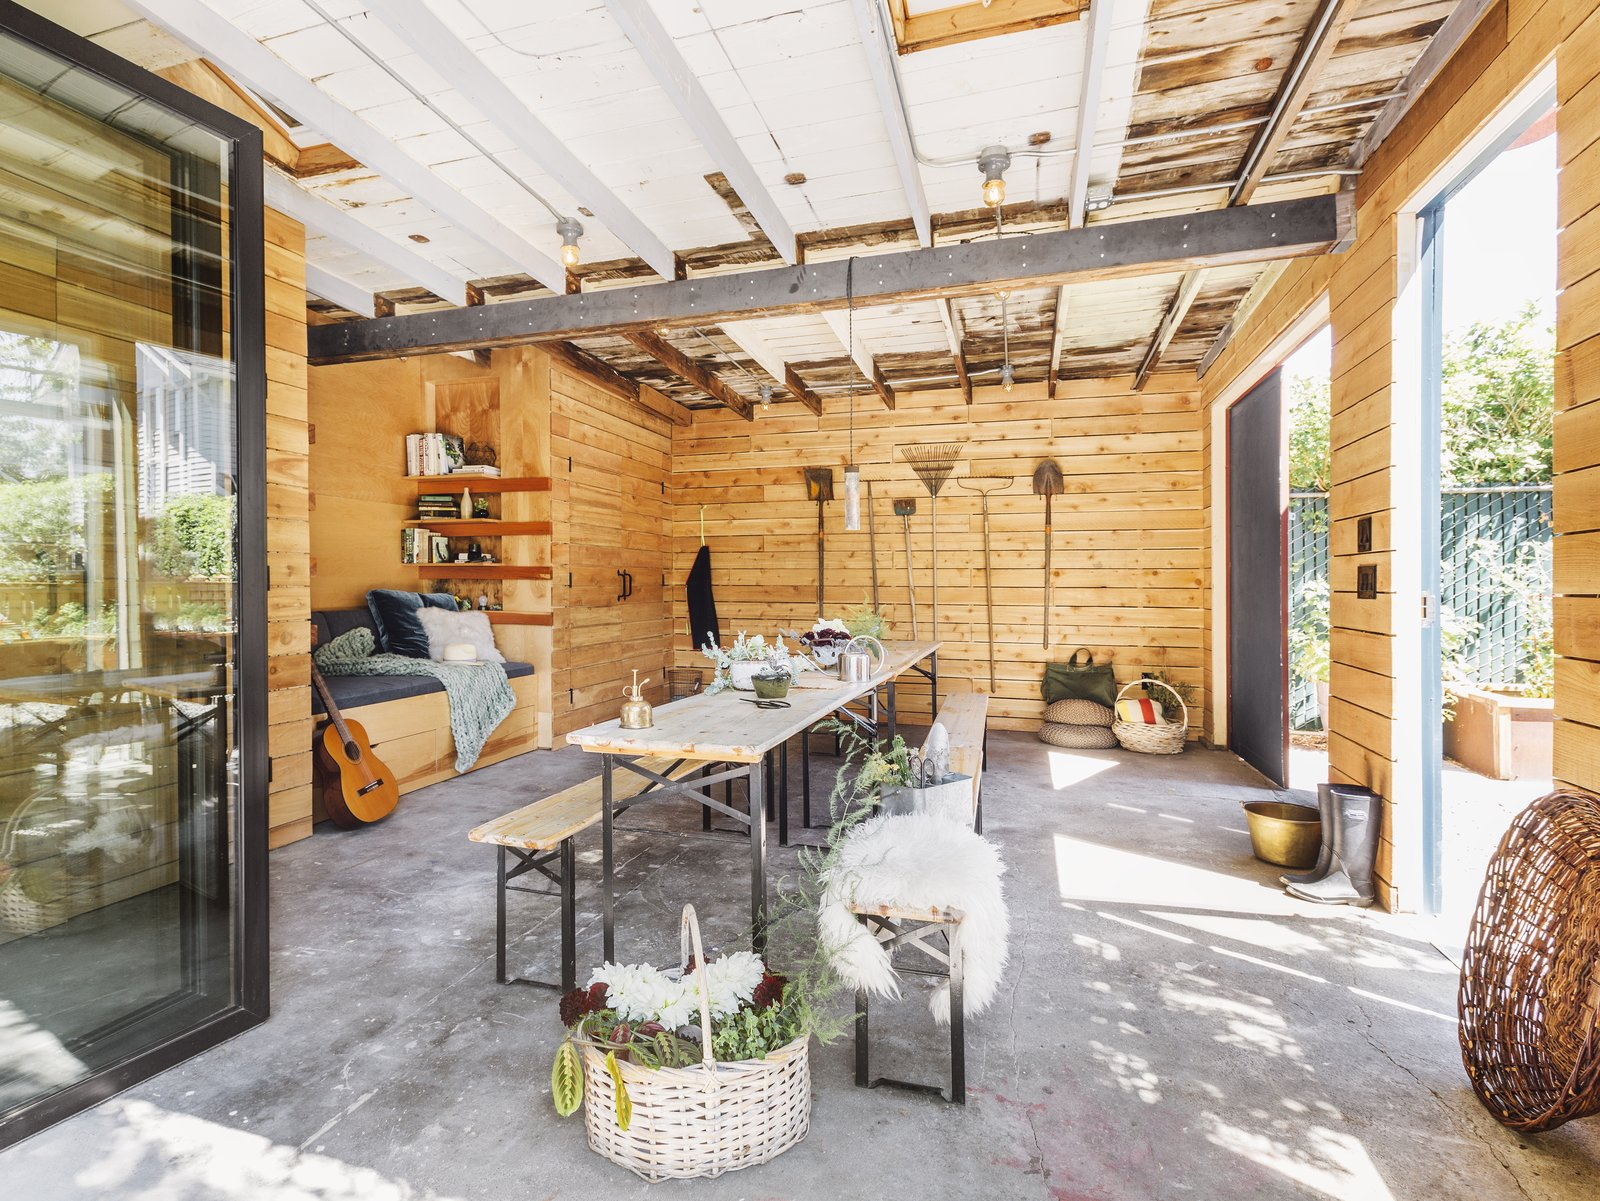 Budget Breakdown: Ballard Garden Studio by Mutuus Studio